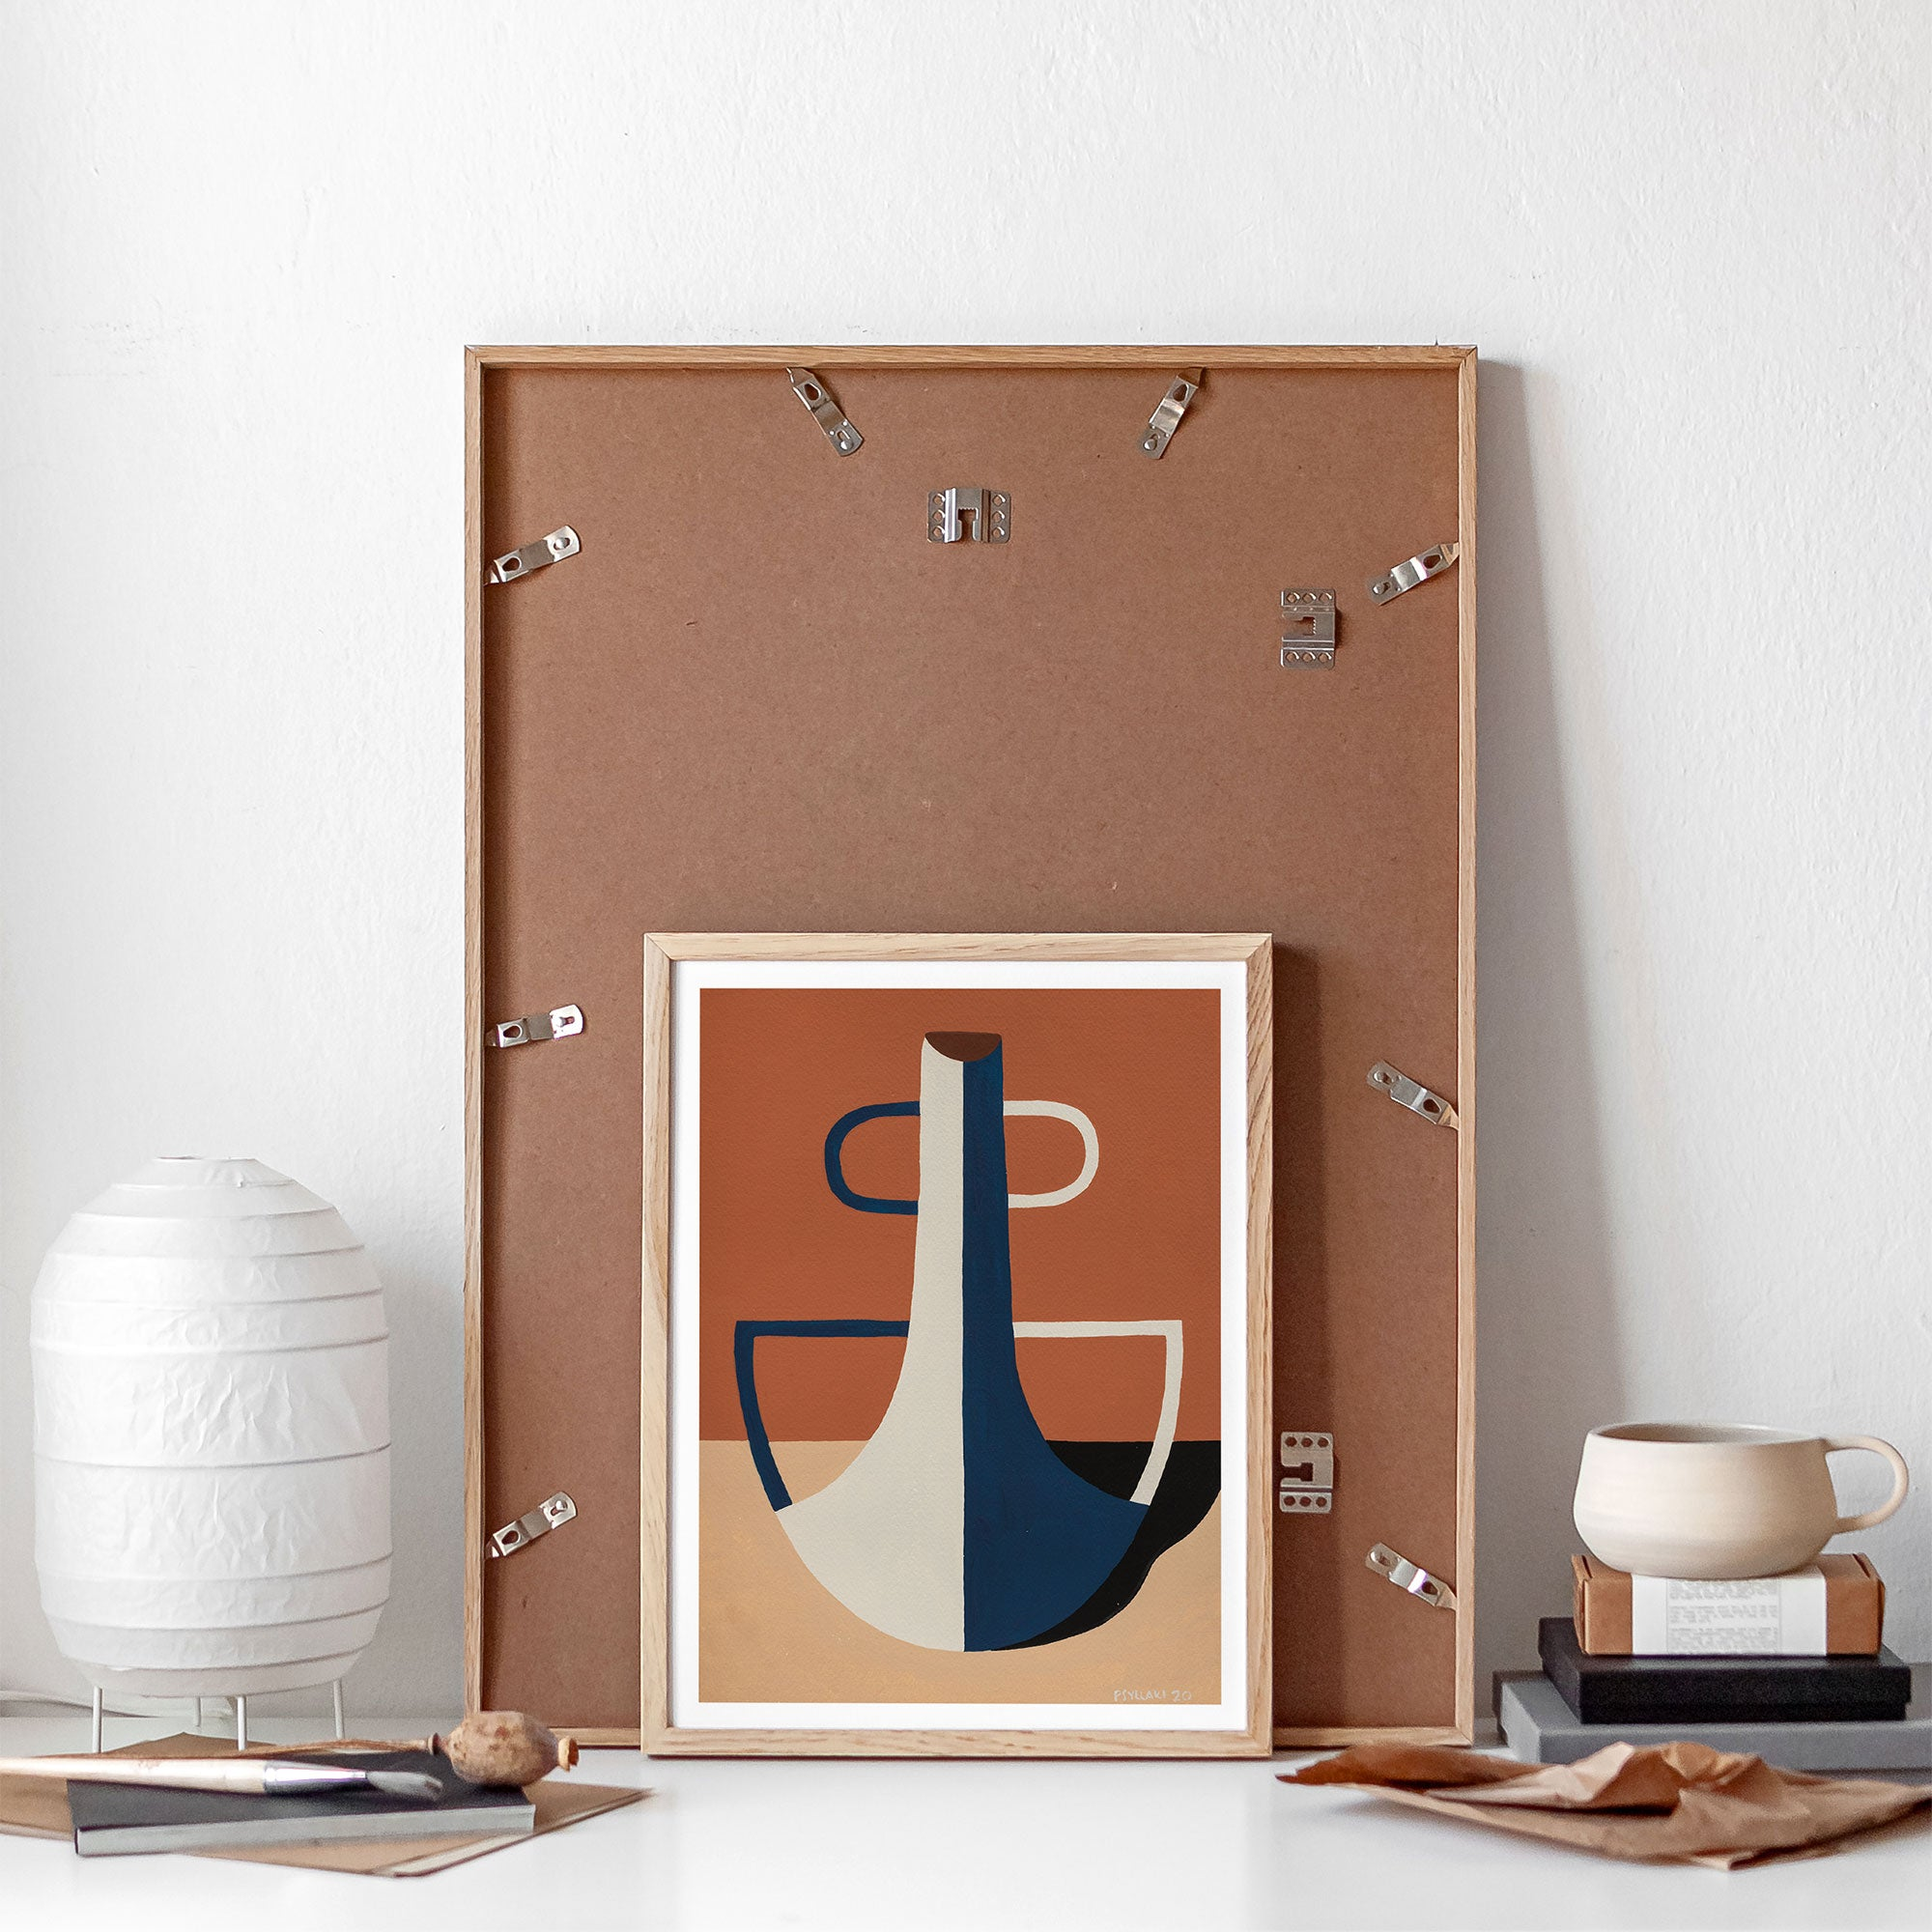 Studio Paradissi Limited Edition Art Print - Geometric 05